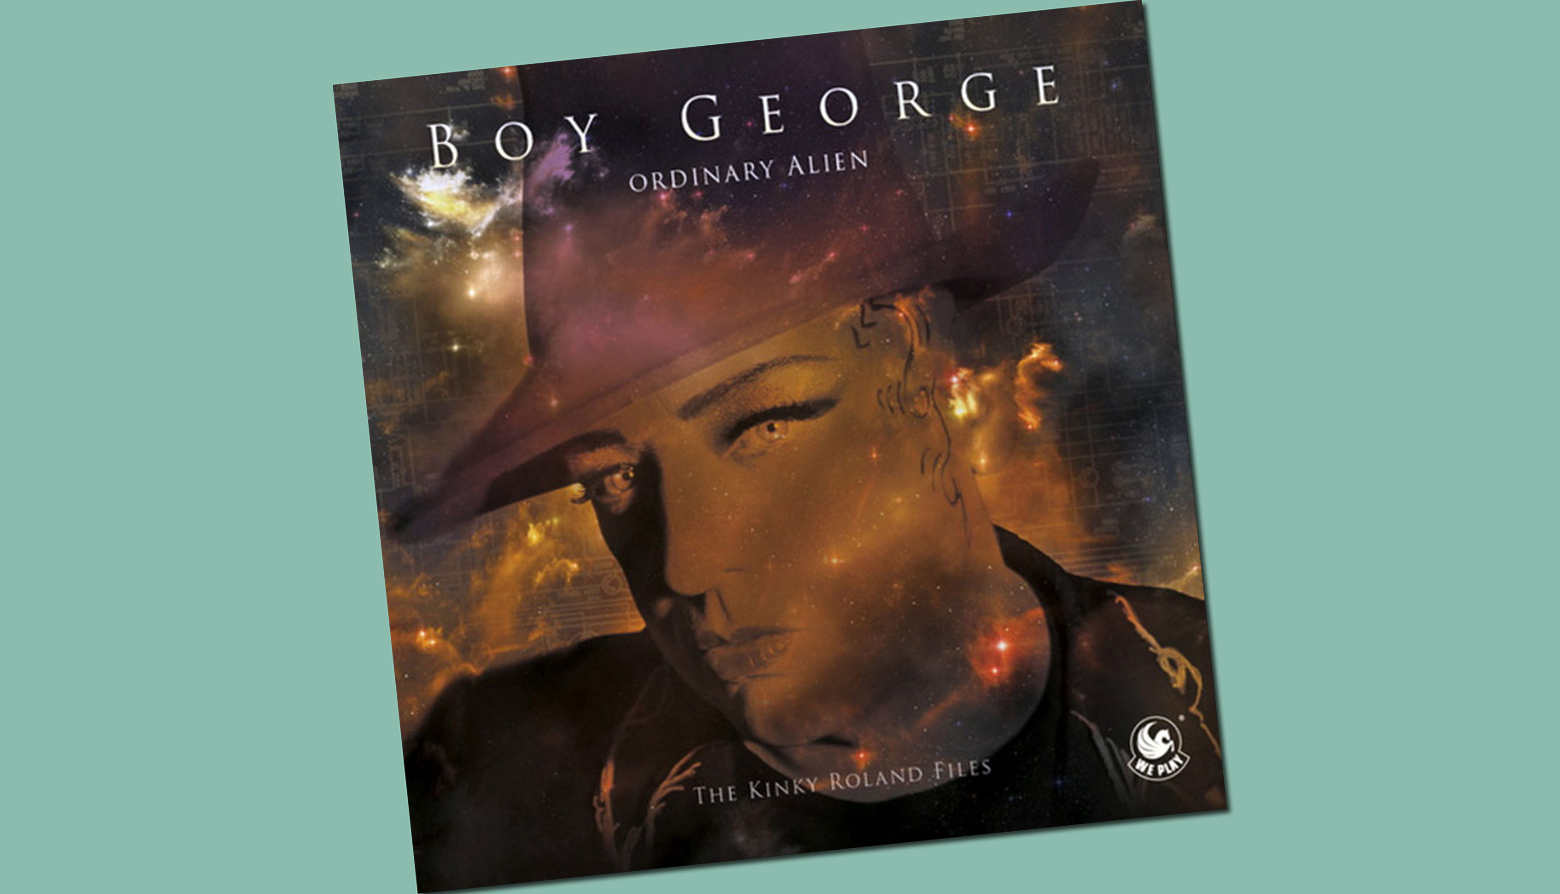 Boy_George-Ordinary_Alien_The_Kinky_Roland_Files-Frontal